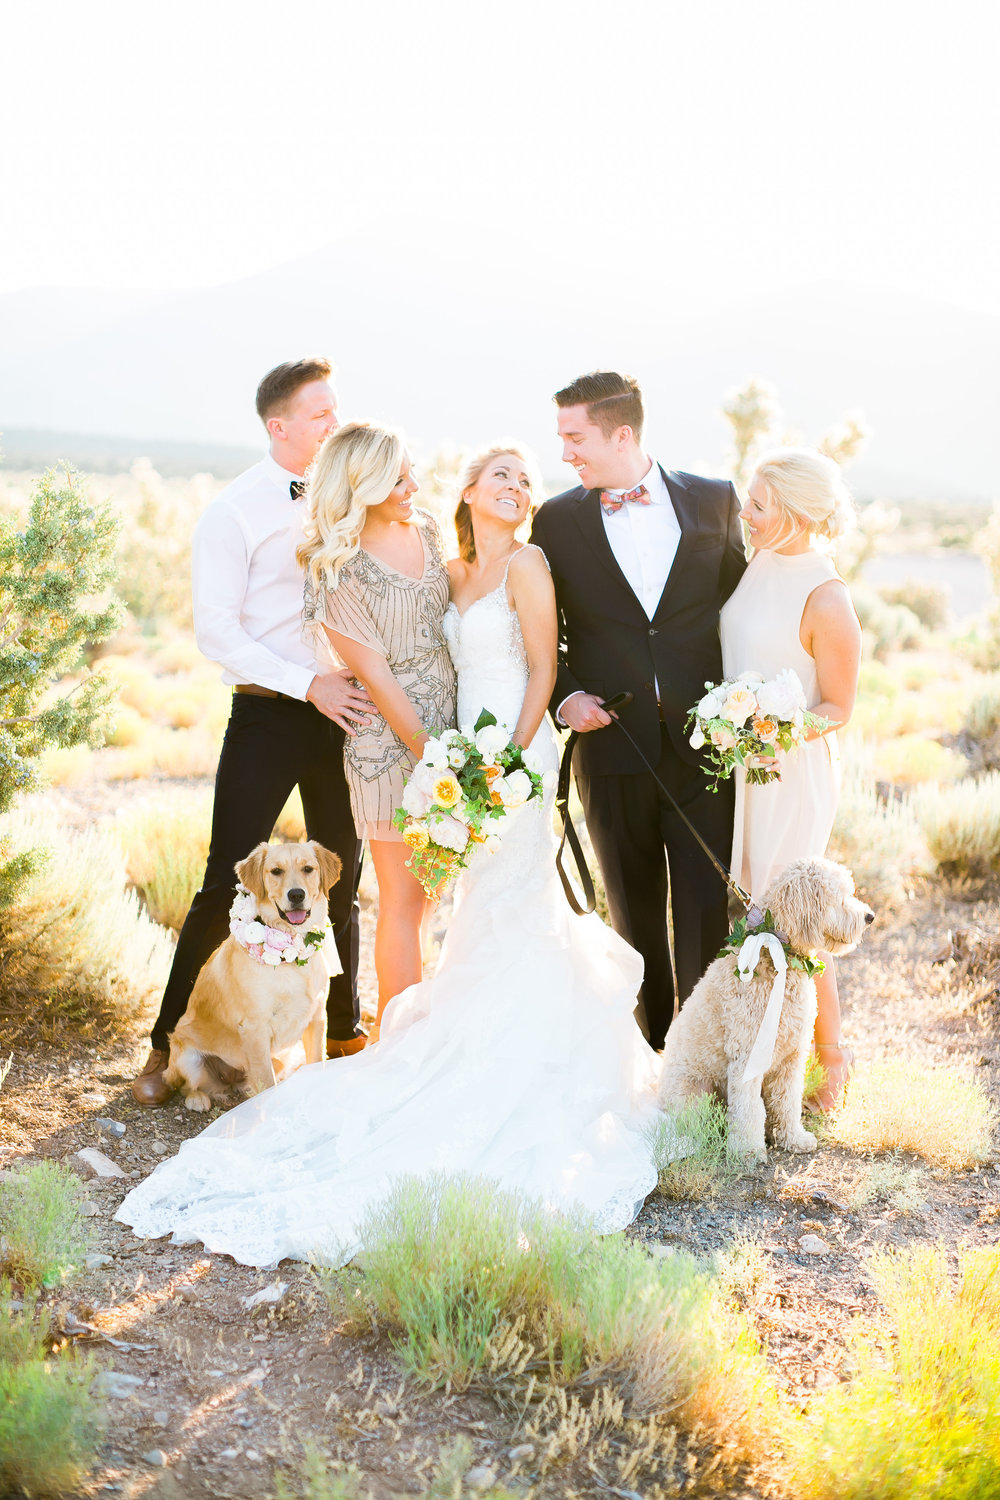 Rustic glam wedding style shoot